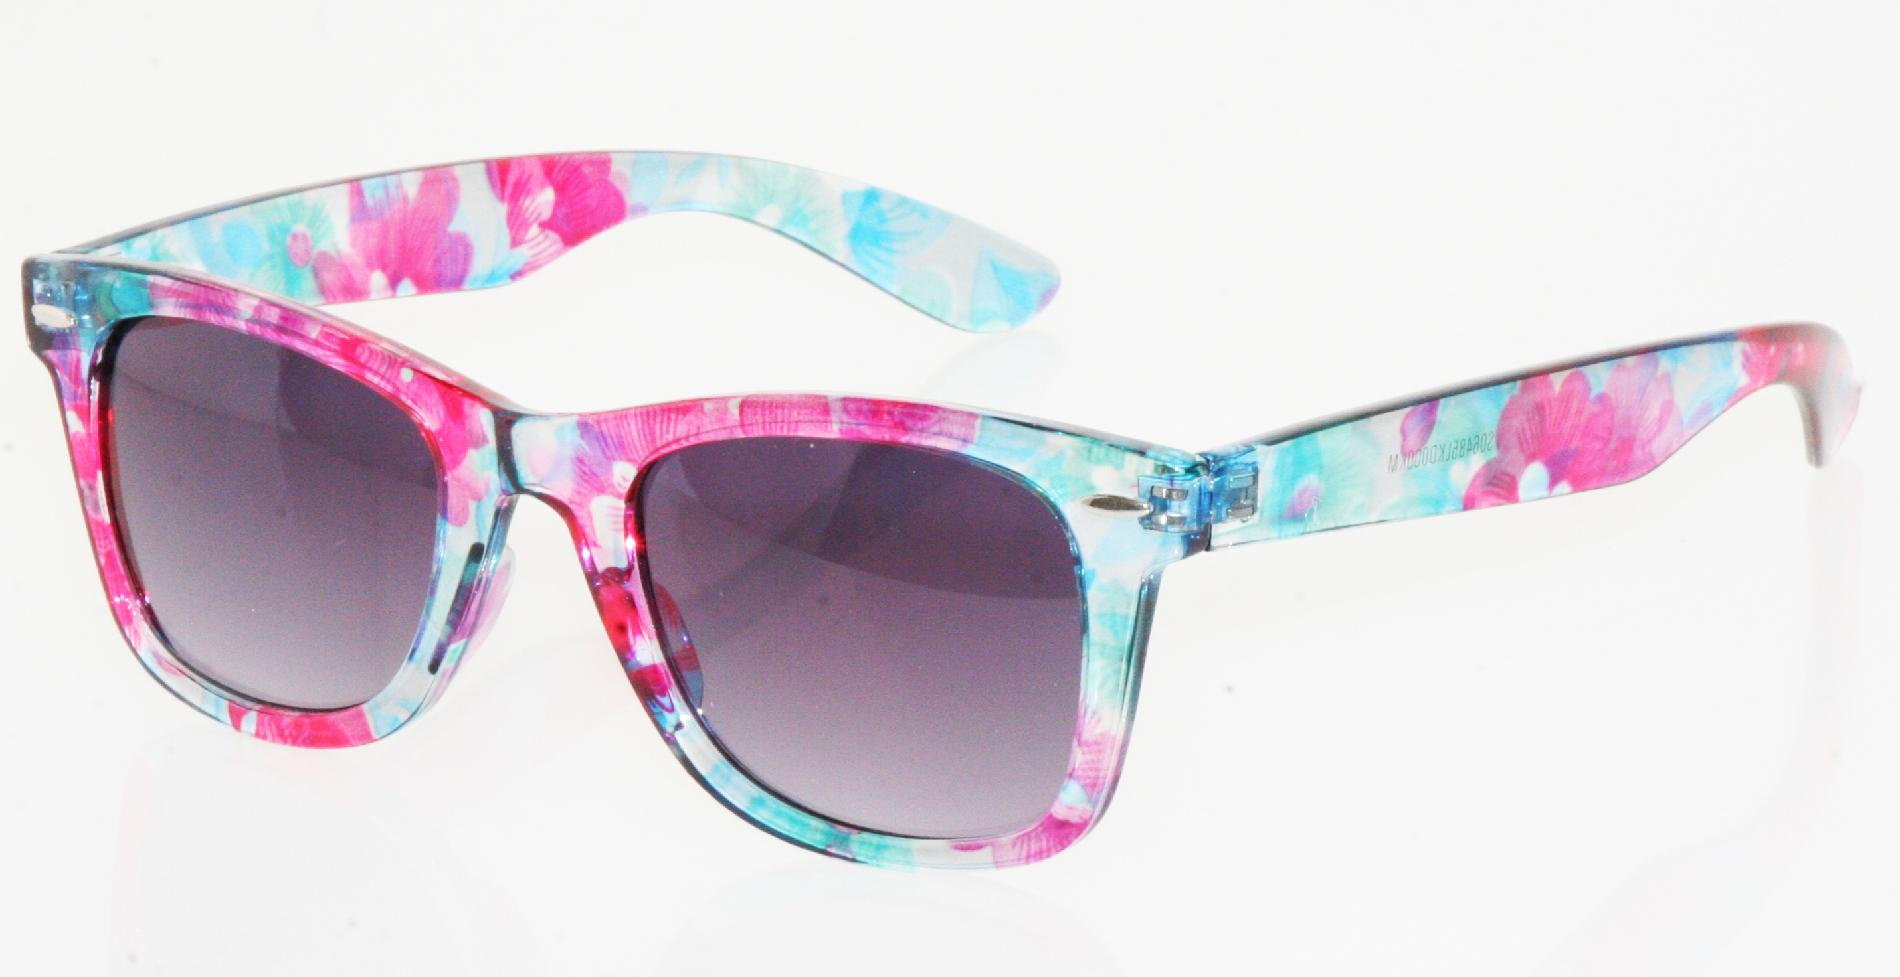 Floral prints are in everywhere —including your sunglasses! Get some fresh blooms with this Dream Out Loud by Selena Gomez pair ($13).